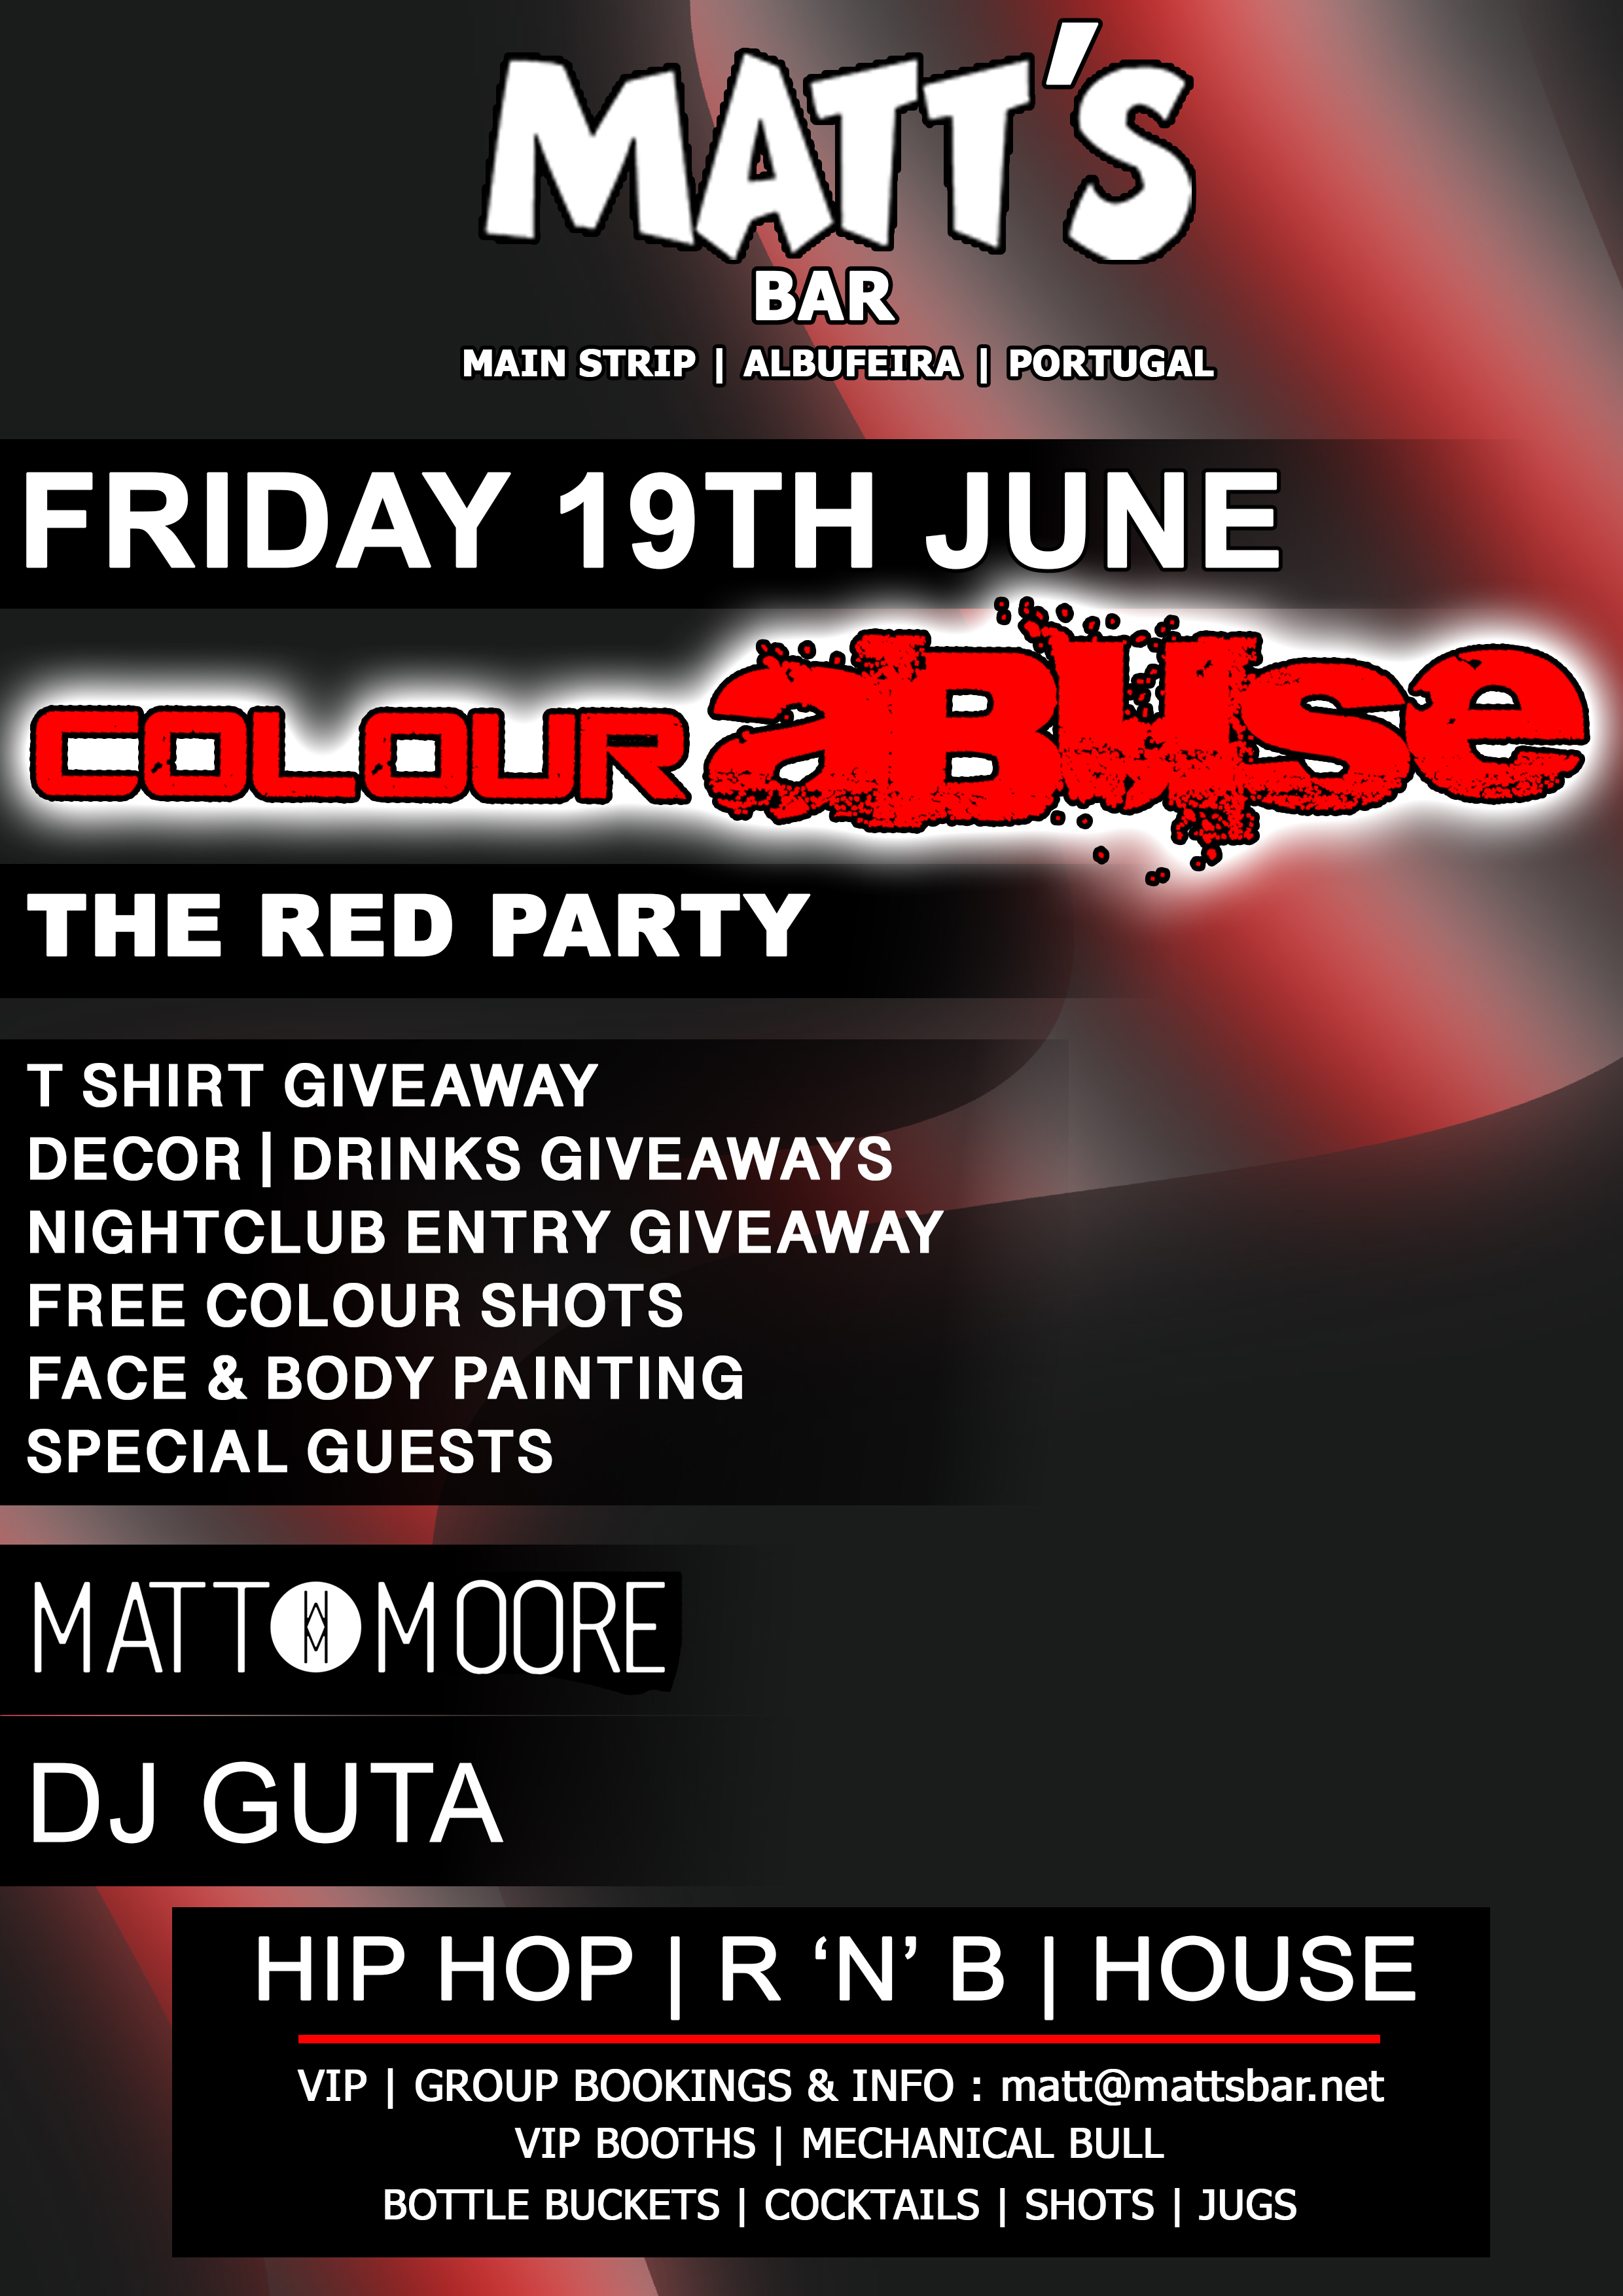 THE RED PARTY